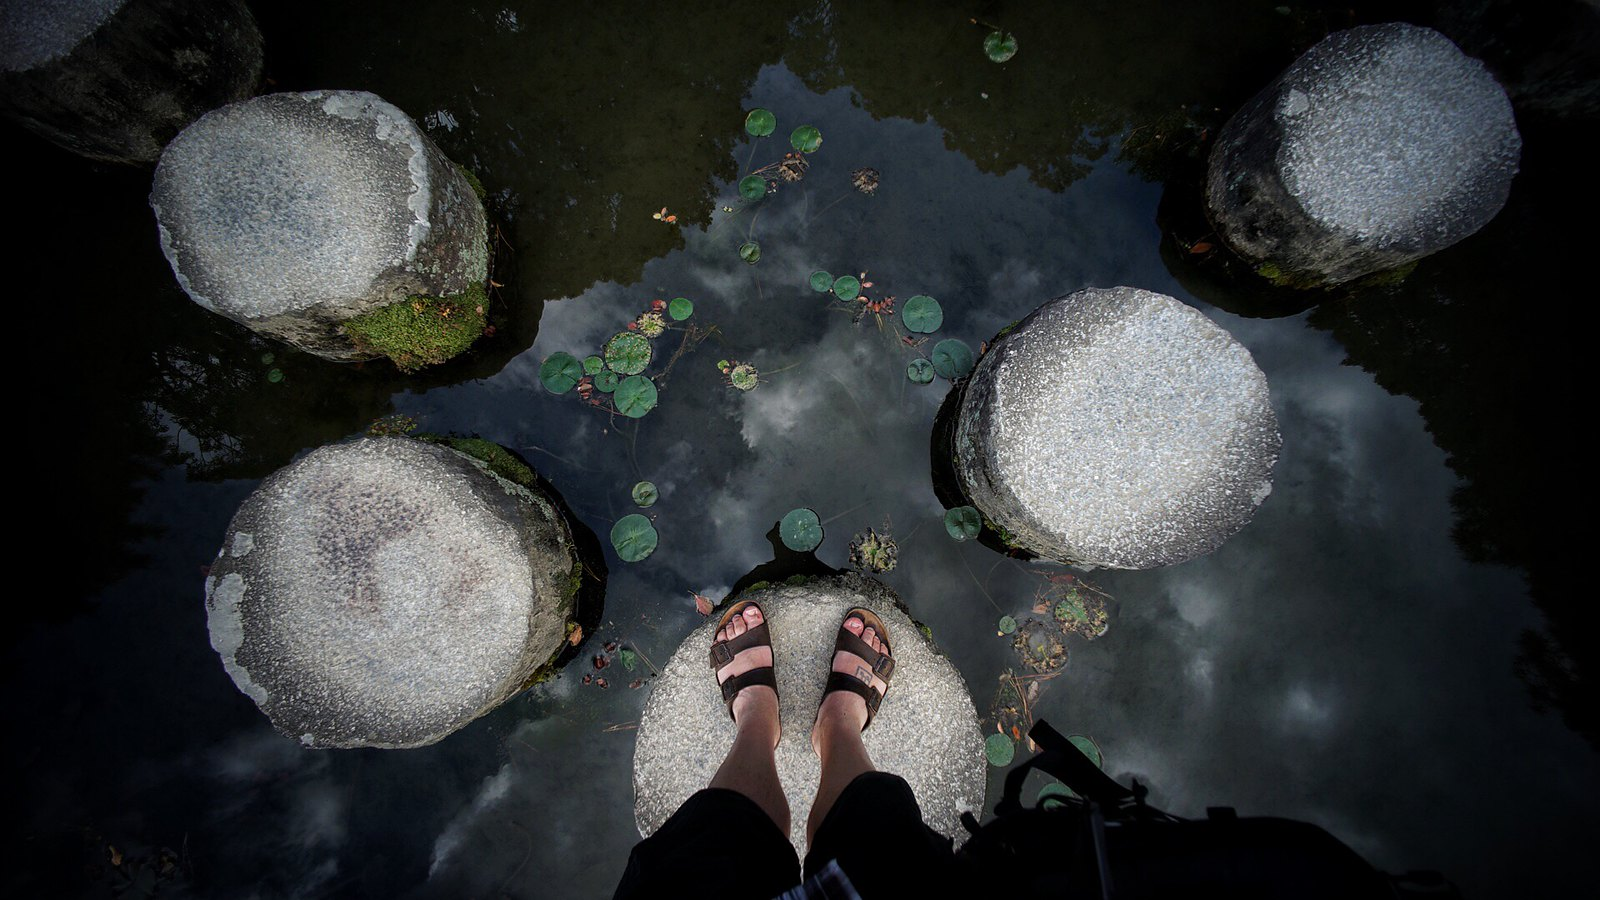 Stepping Stones #heian #Kyoto #SonyA7 #Voigtlander12mm #foto #japan15